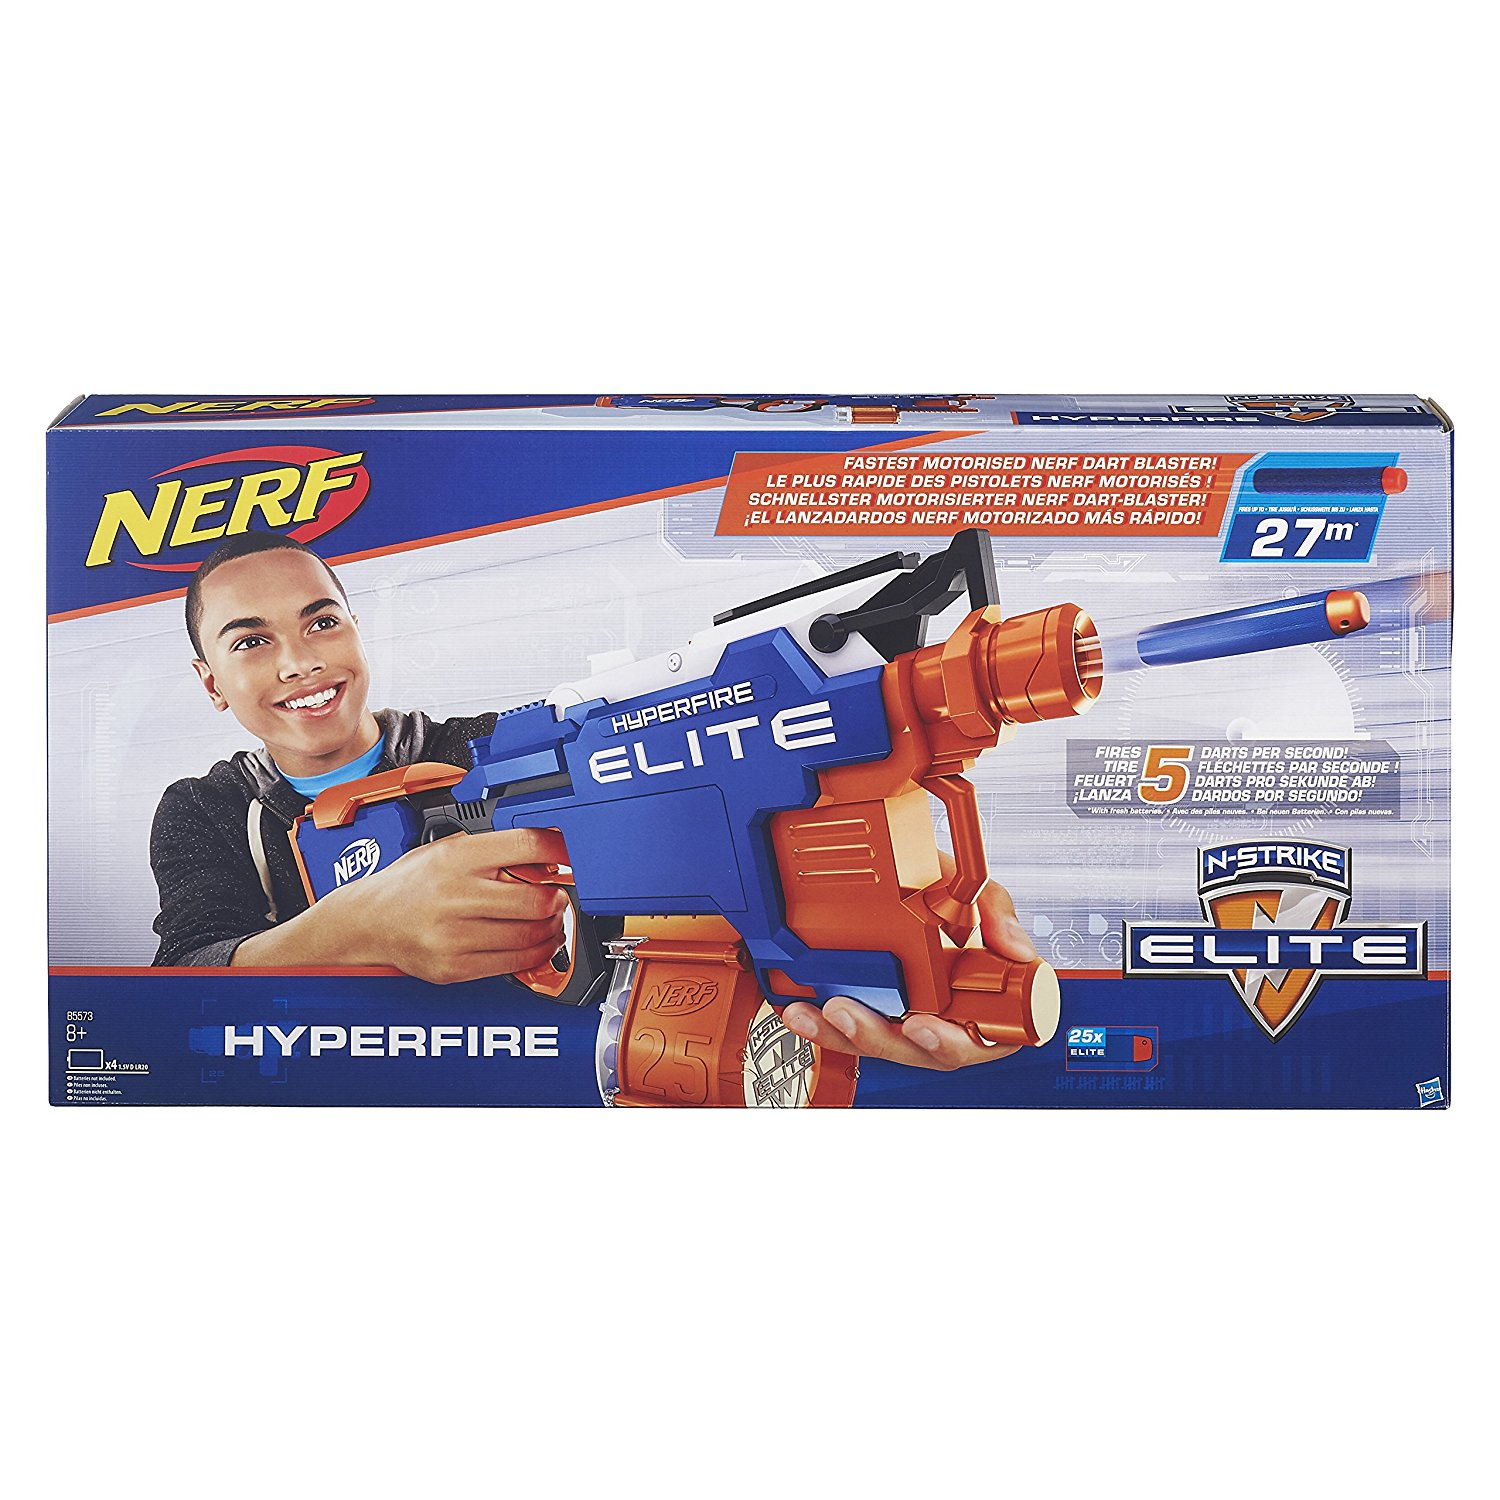 Hasbro Nerf Elite amazon